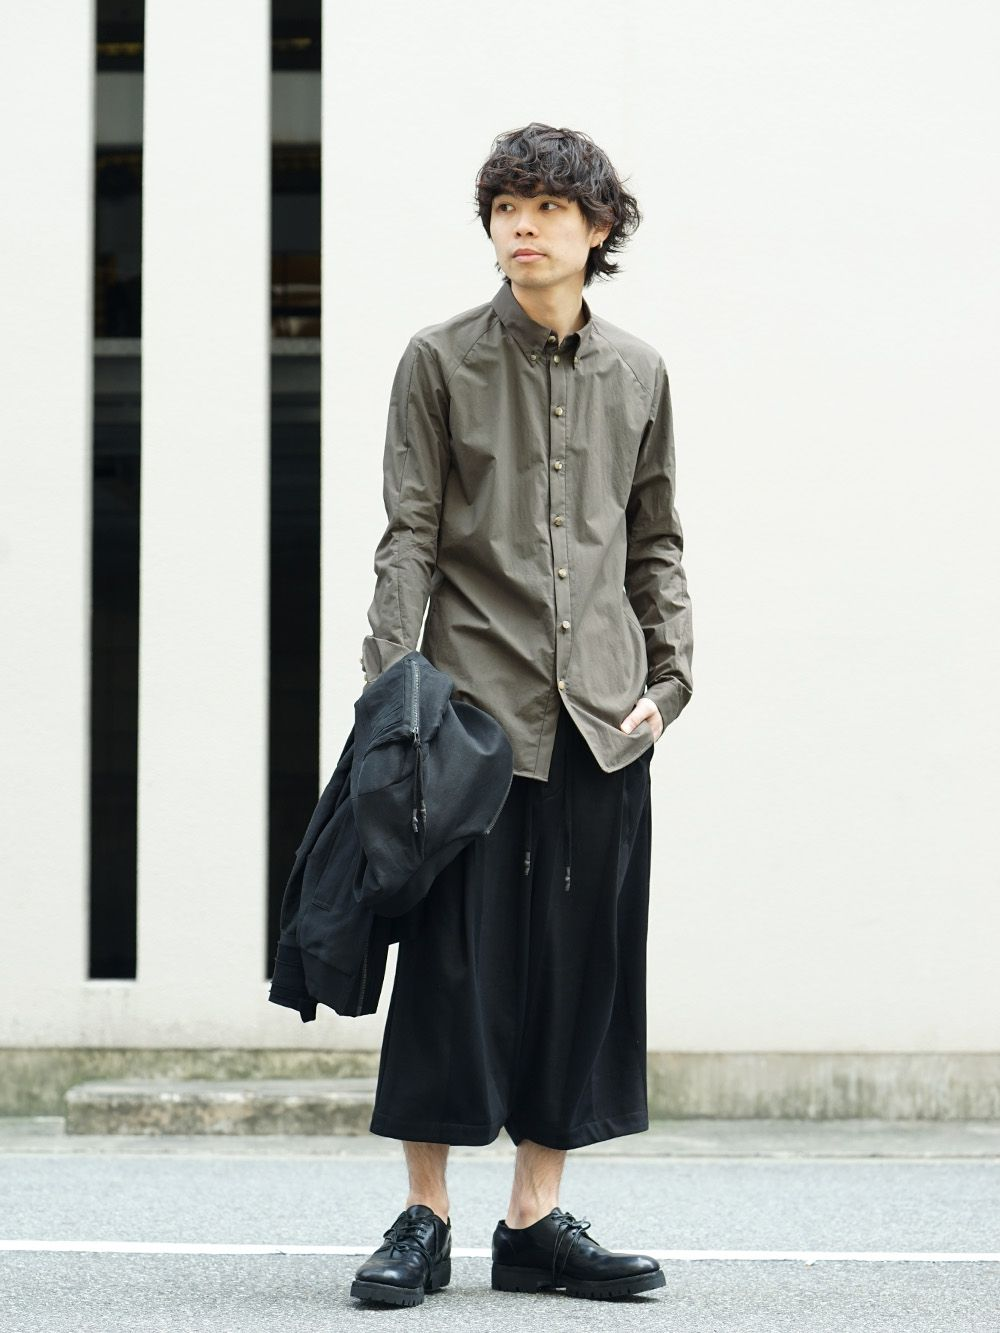 DEVOA 19SS COLLECTION IMMUTABLE COOL STYLE - 3-003